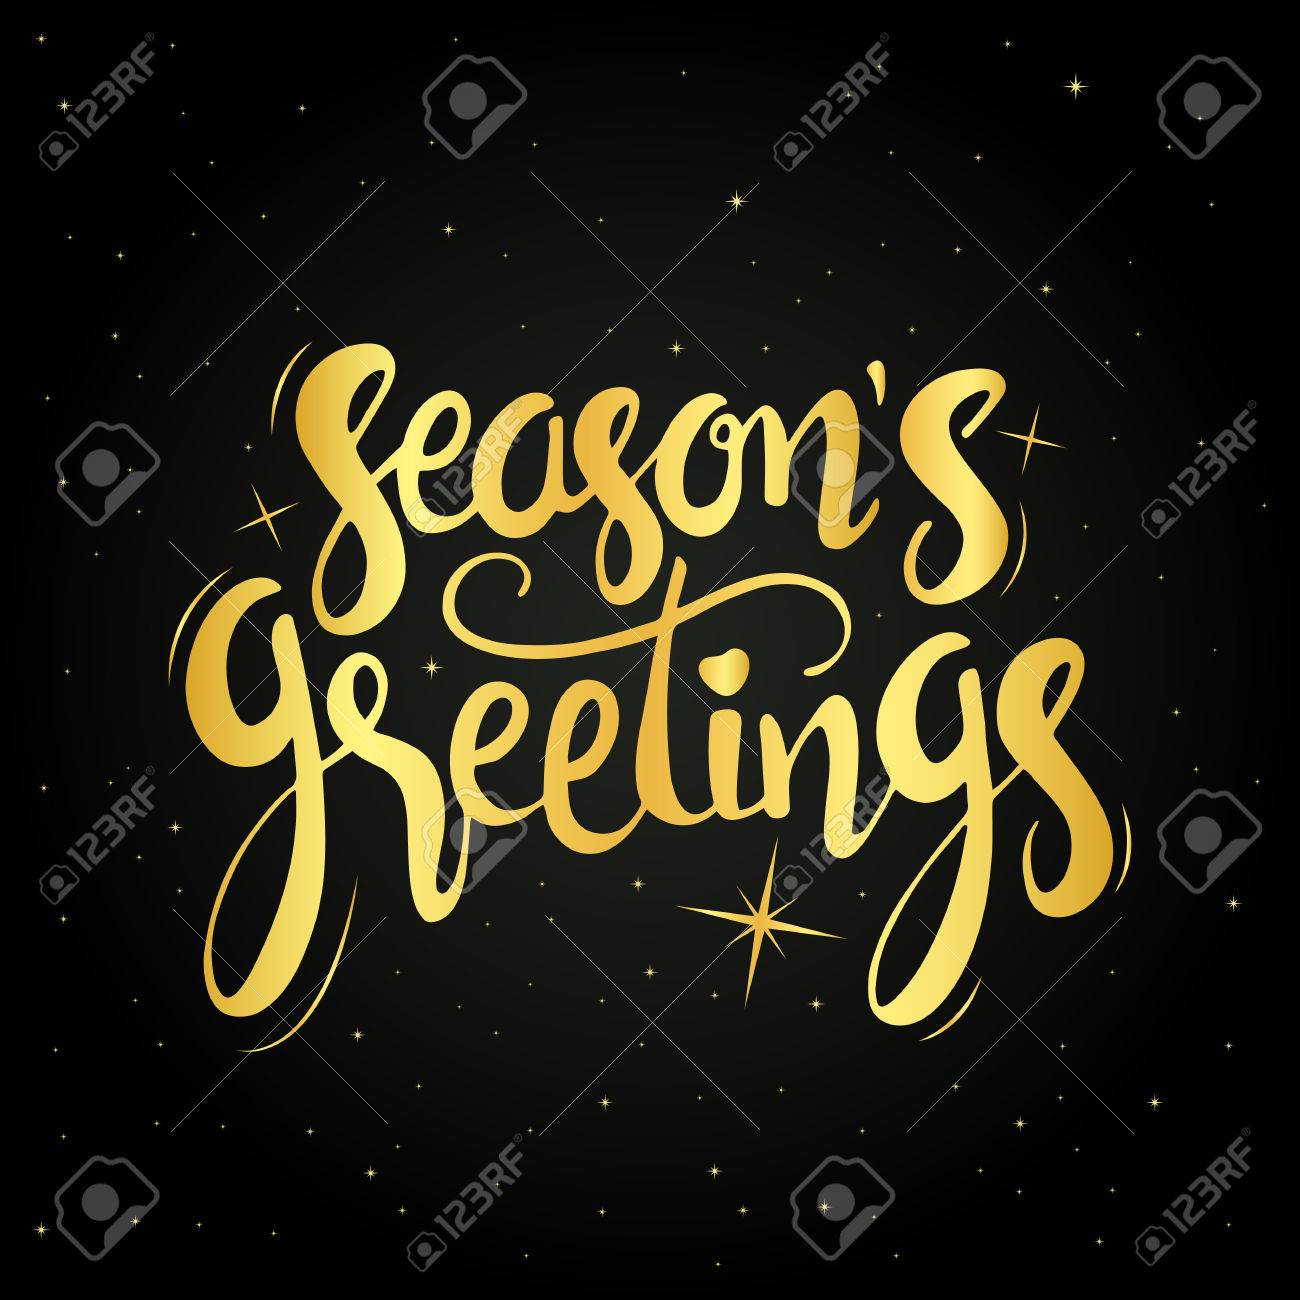 Seasons greetings golden handwritten lettering modern hand drawn seasons greetings golden handwritten lettering modern hand drawn calligraphy over starry night background for your kristyandbryce Image collections